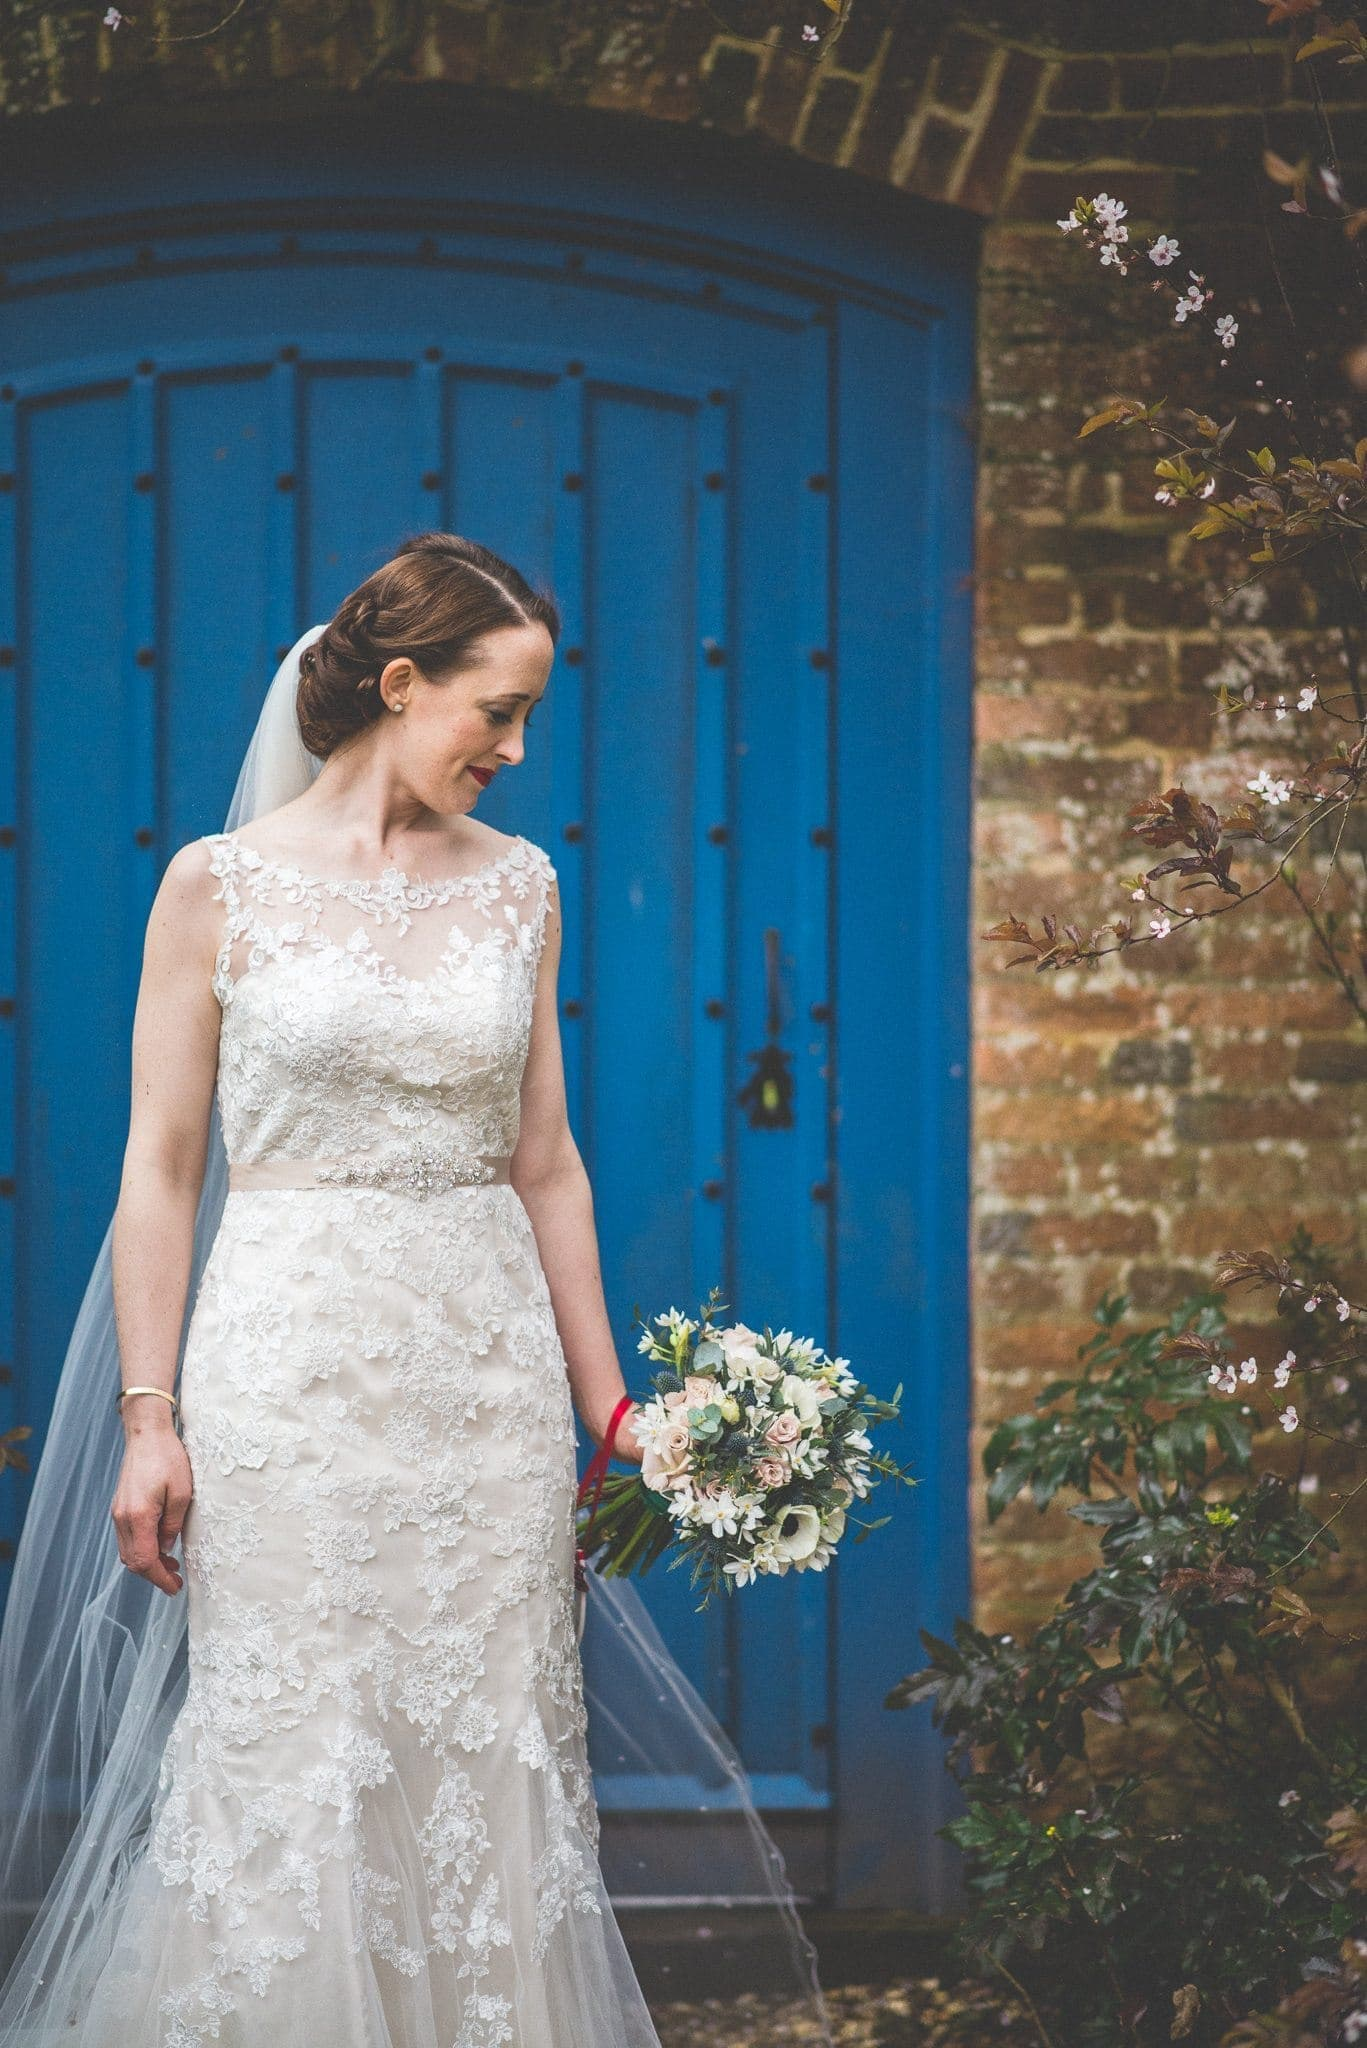 Bride looking at her bouquet before walking to her wedding ceremony at Farnham Castle